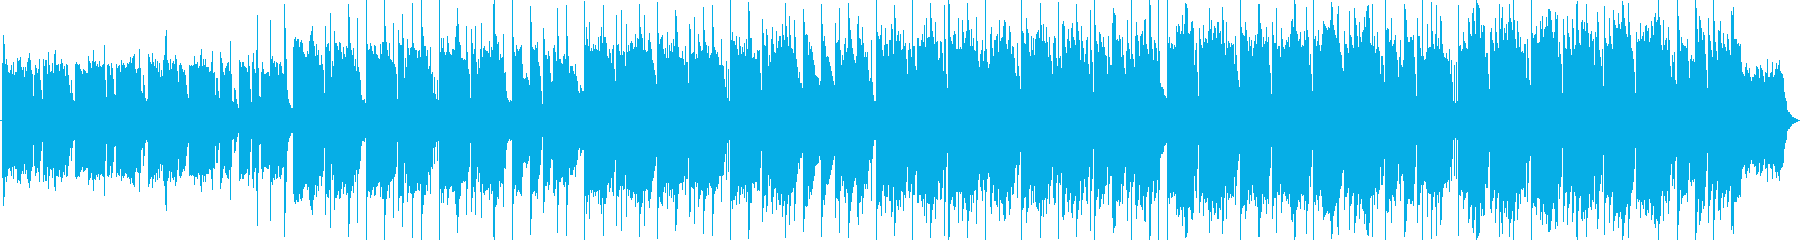 For commercials, product introductions, brand videos, etc.'s reproduced waveform